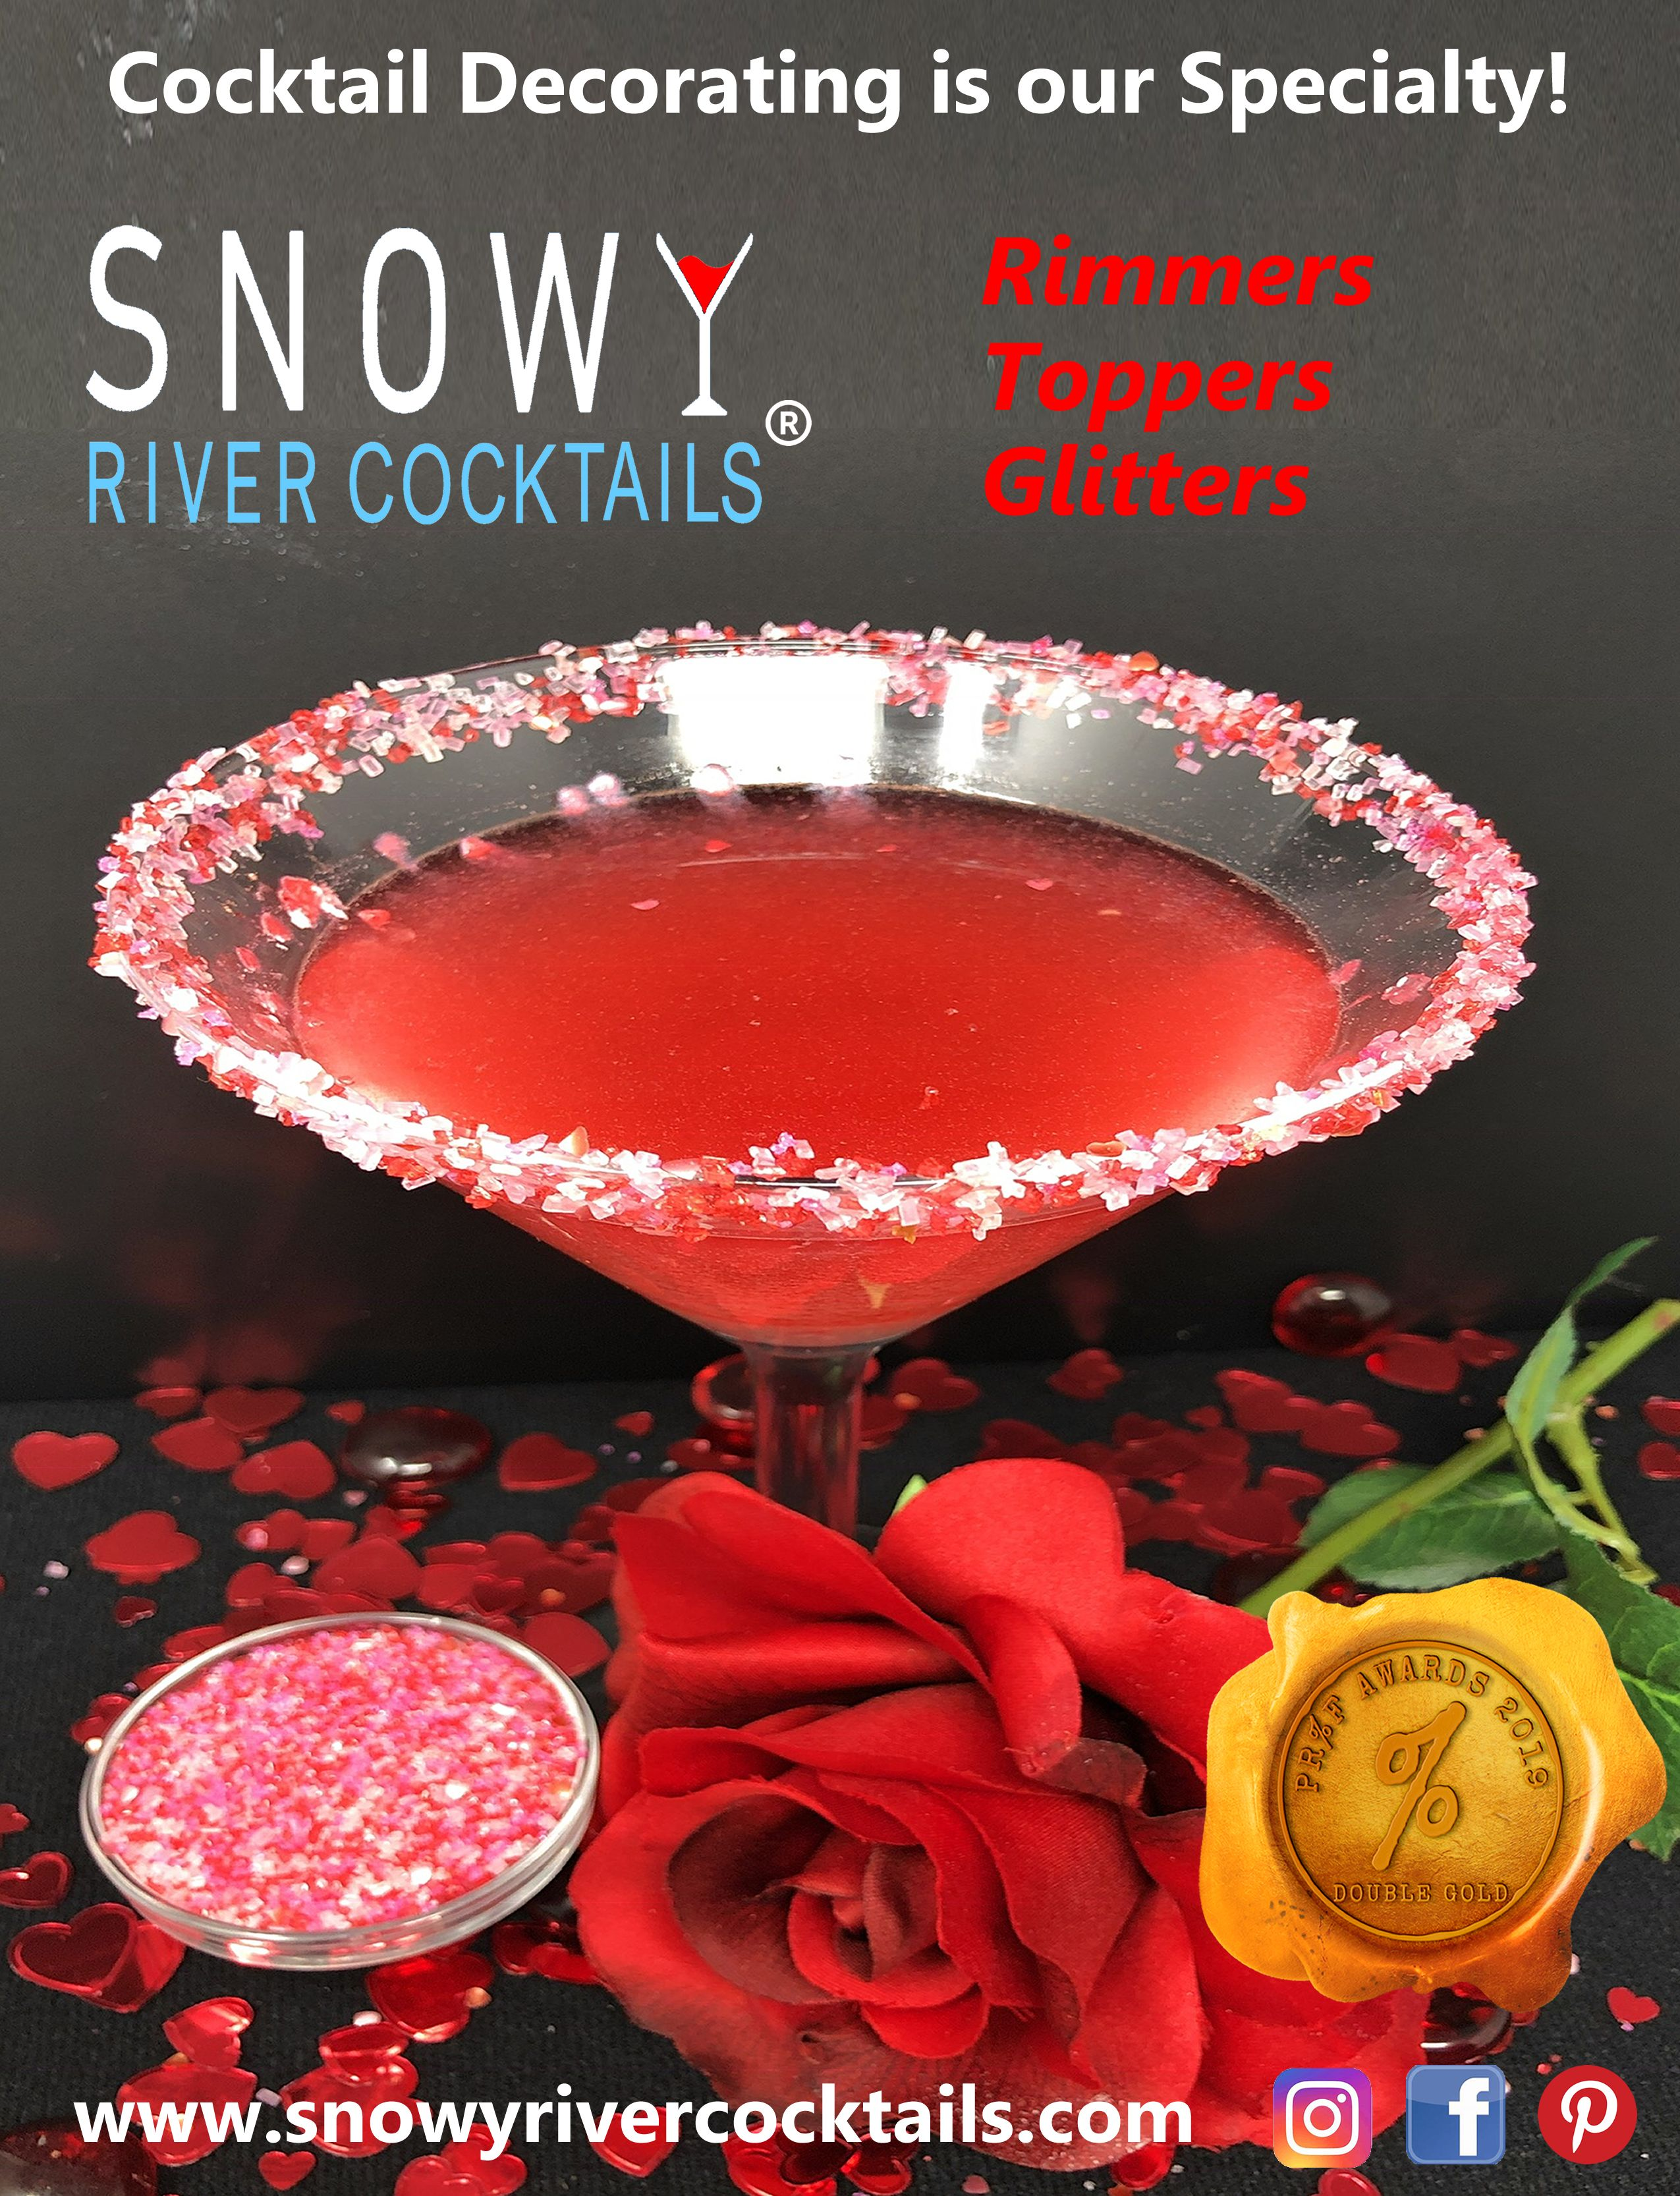 Snowy River Sweetheart Cosmo Cocktail Decorating Kit Cosmo Cocktail Cocktails Craft Cocktails